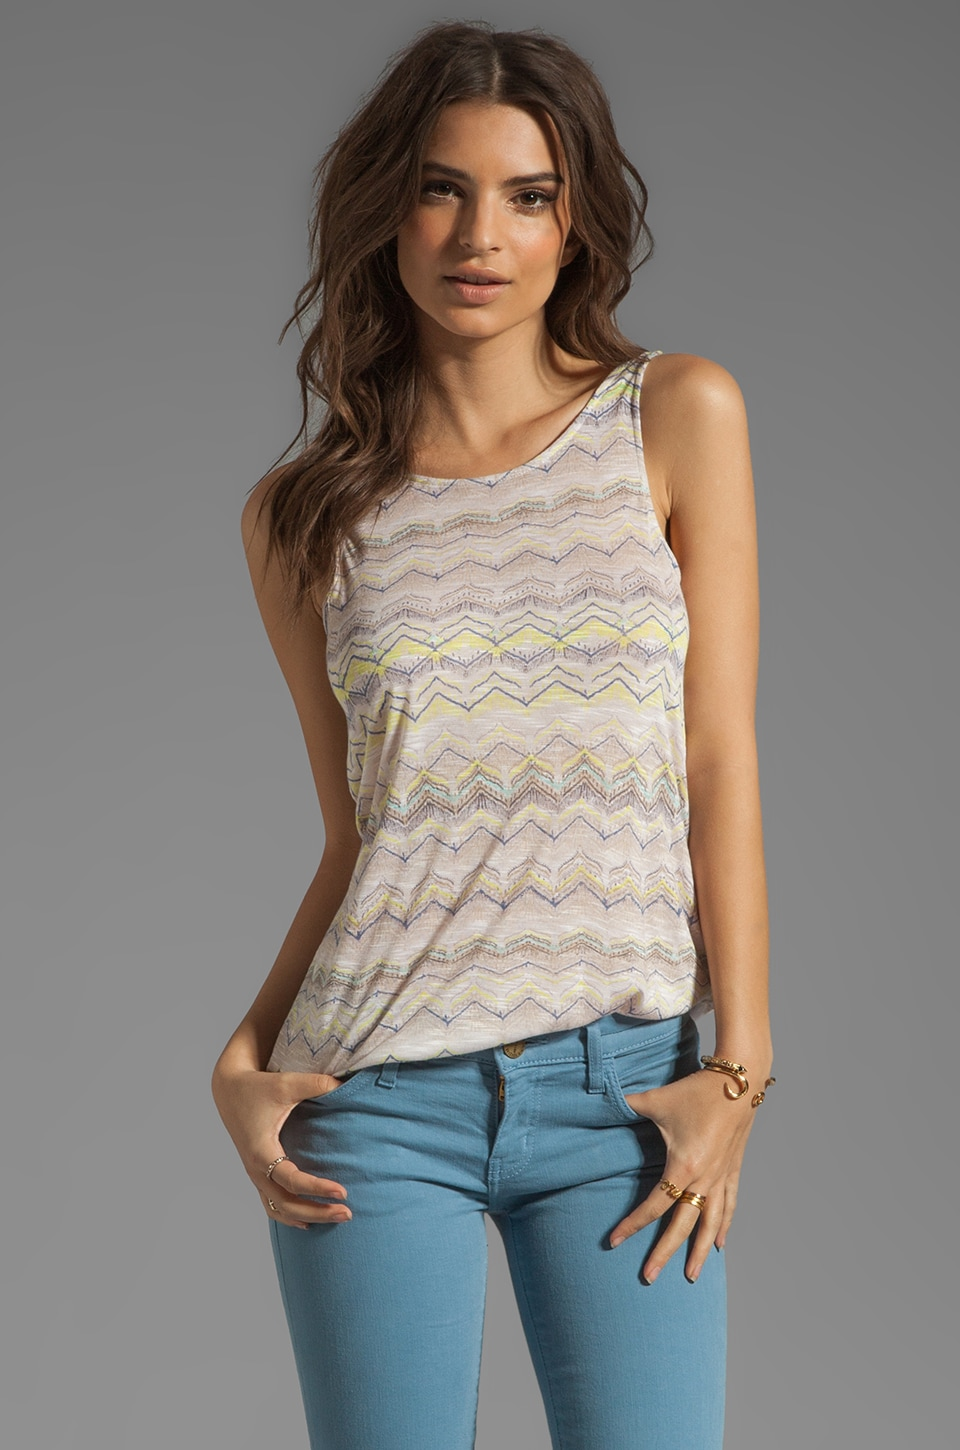 Ella Moss Feather Tail Tank in Linen